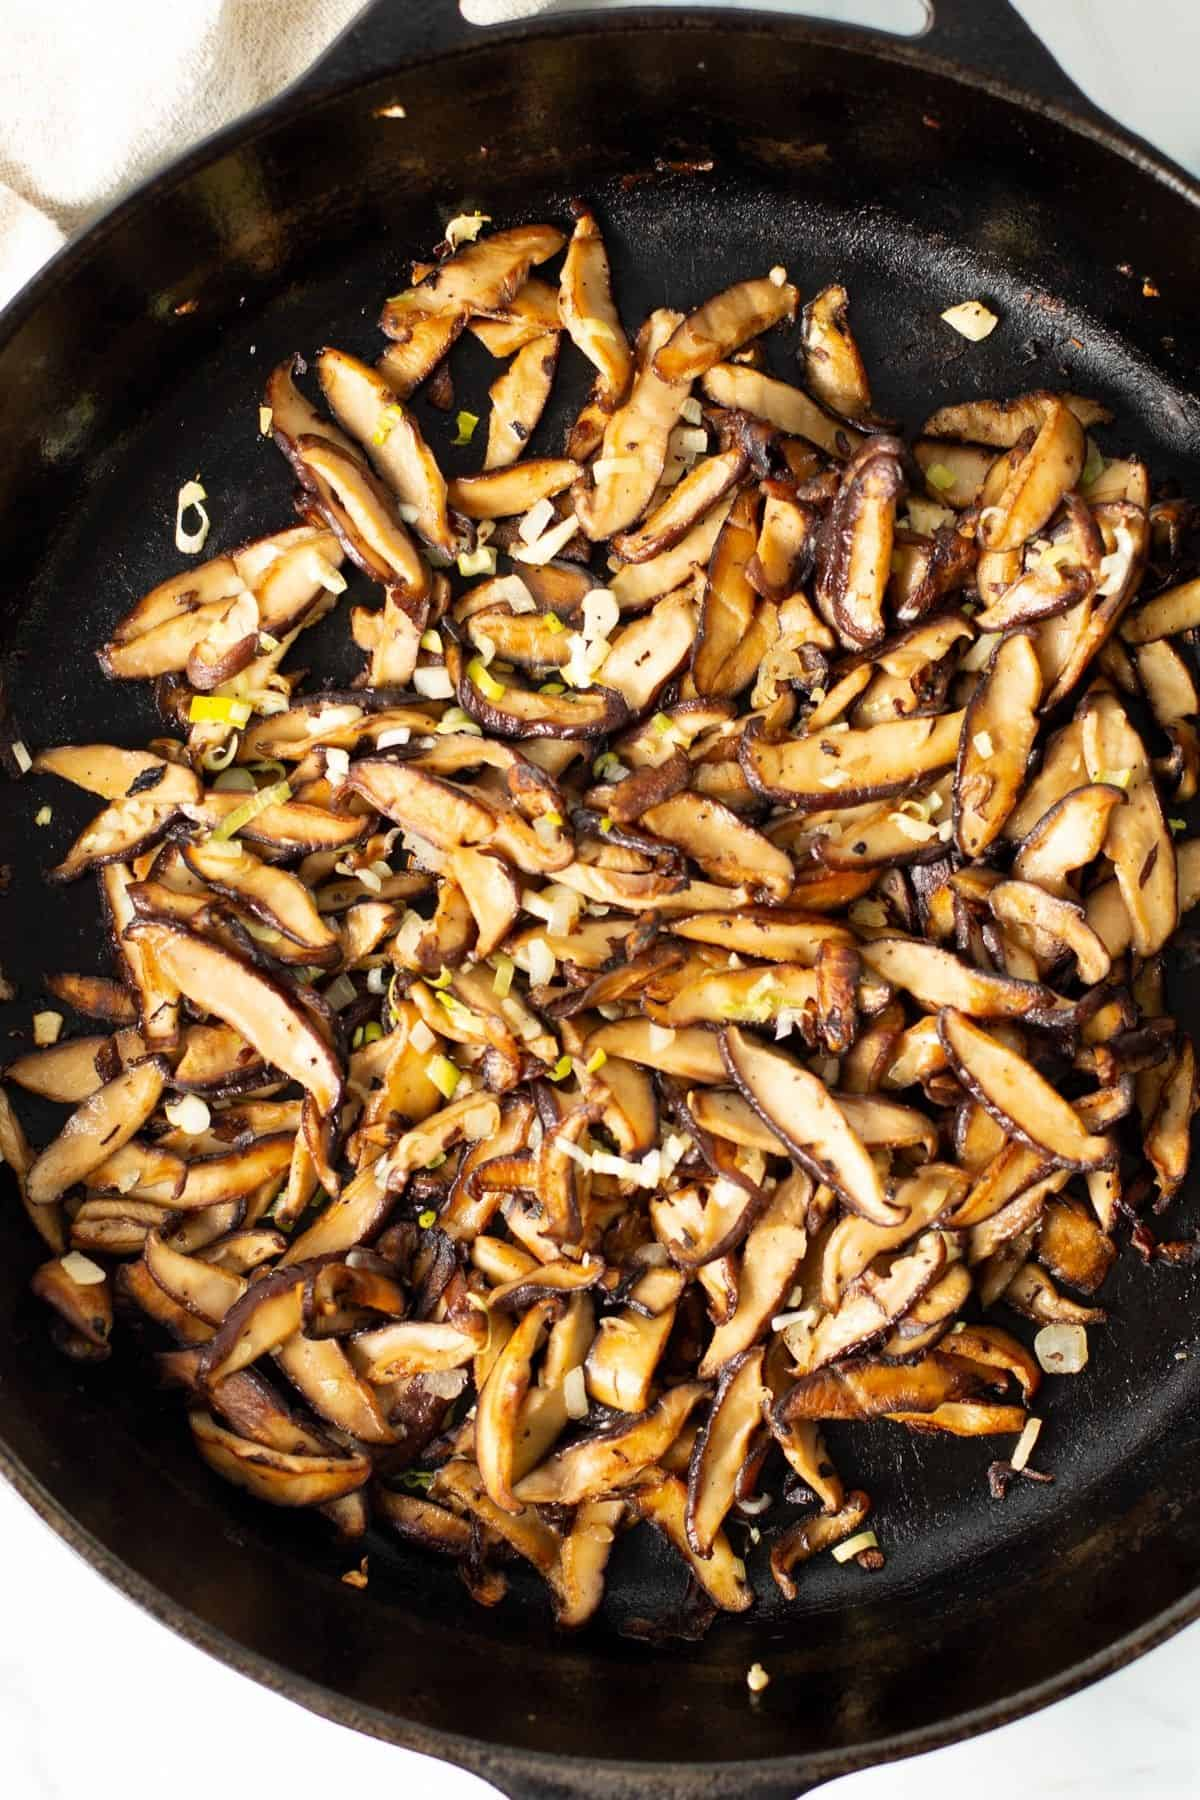 shiitake mushrooms recipe cooking in a cast iron skillet